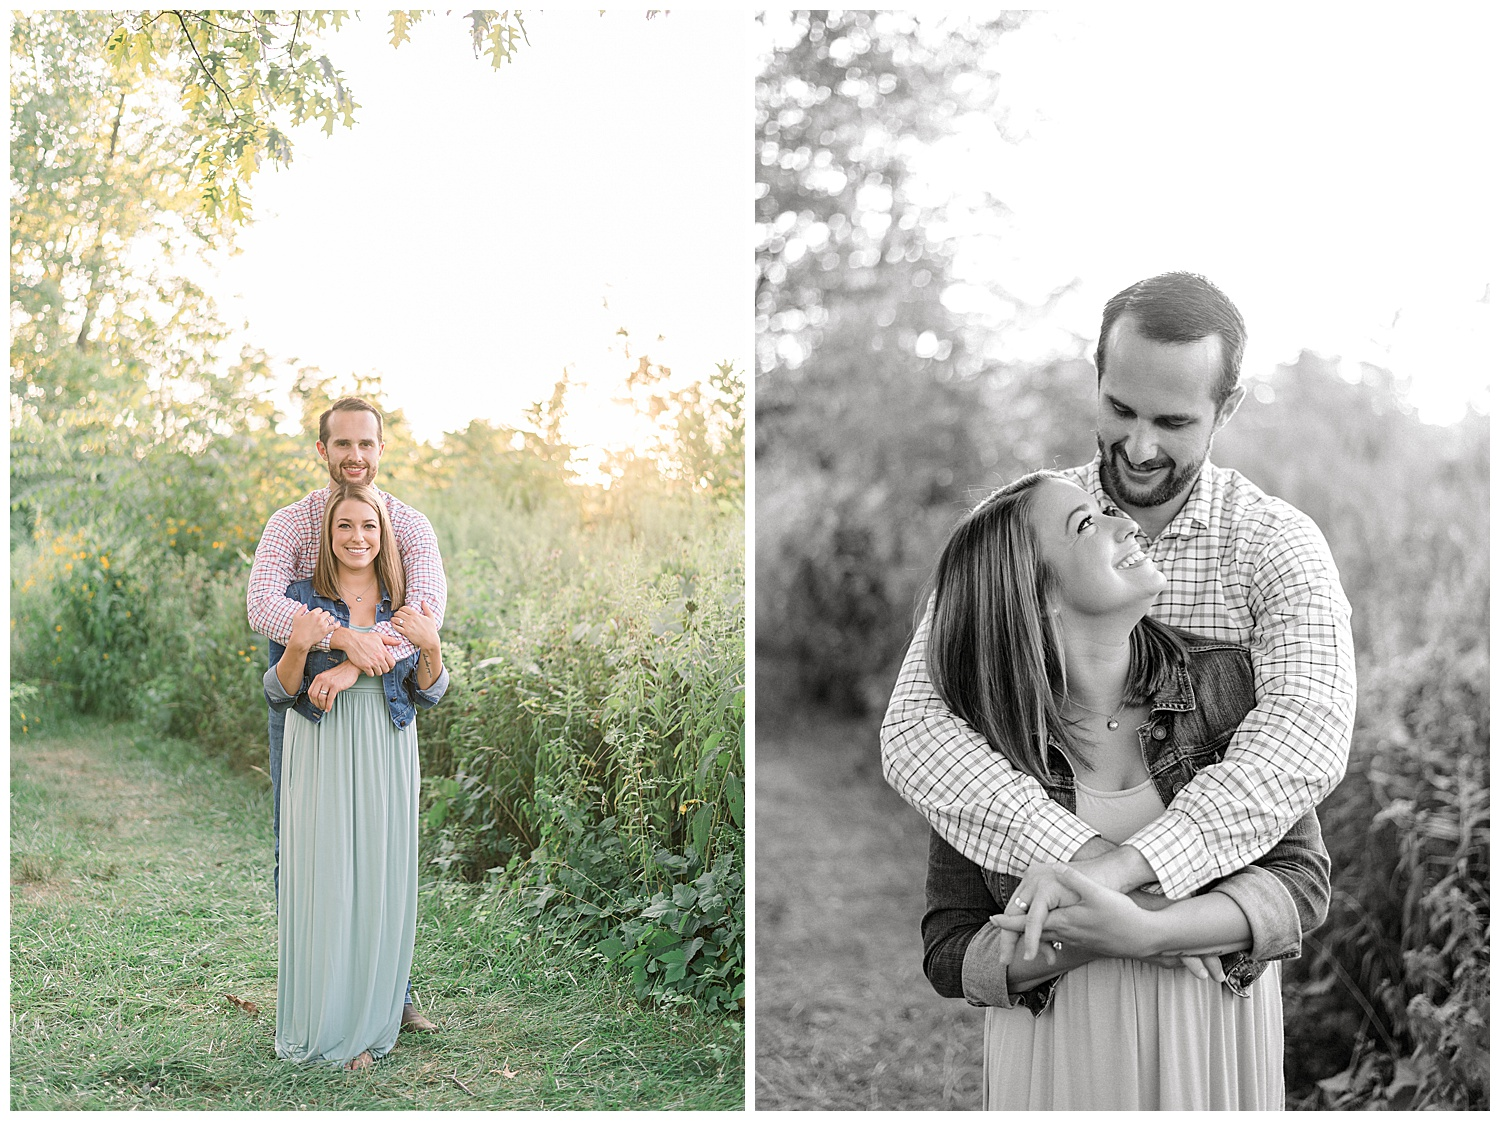 Cox_Arboretum_Anniversary_Session_Miamisburg_Ohio_Cassandra_Janina_Photography_Ohio_Wedding_Photographer_0268.jpg